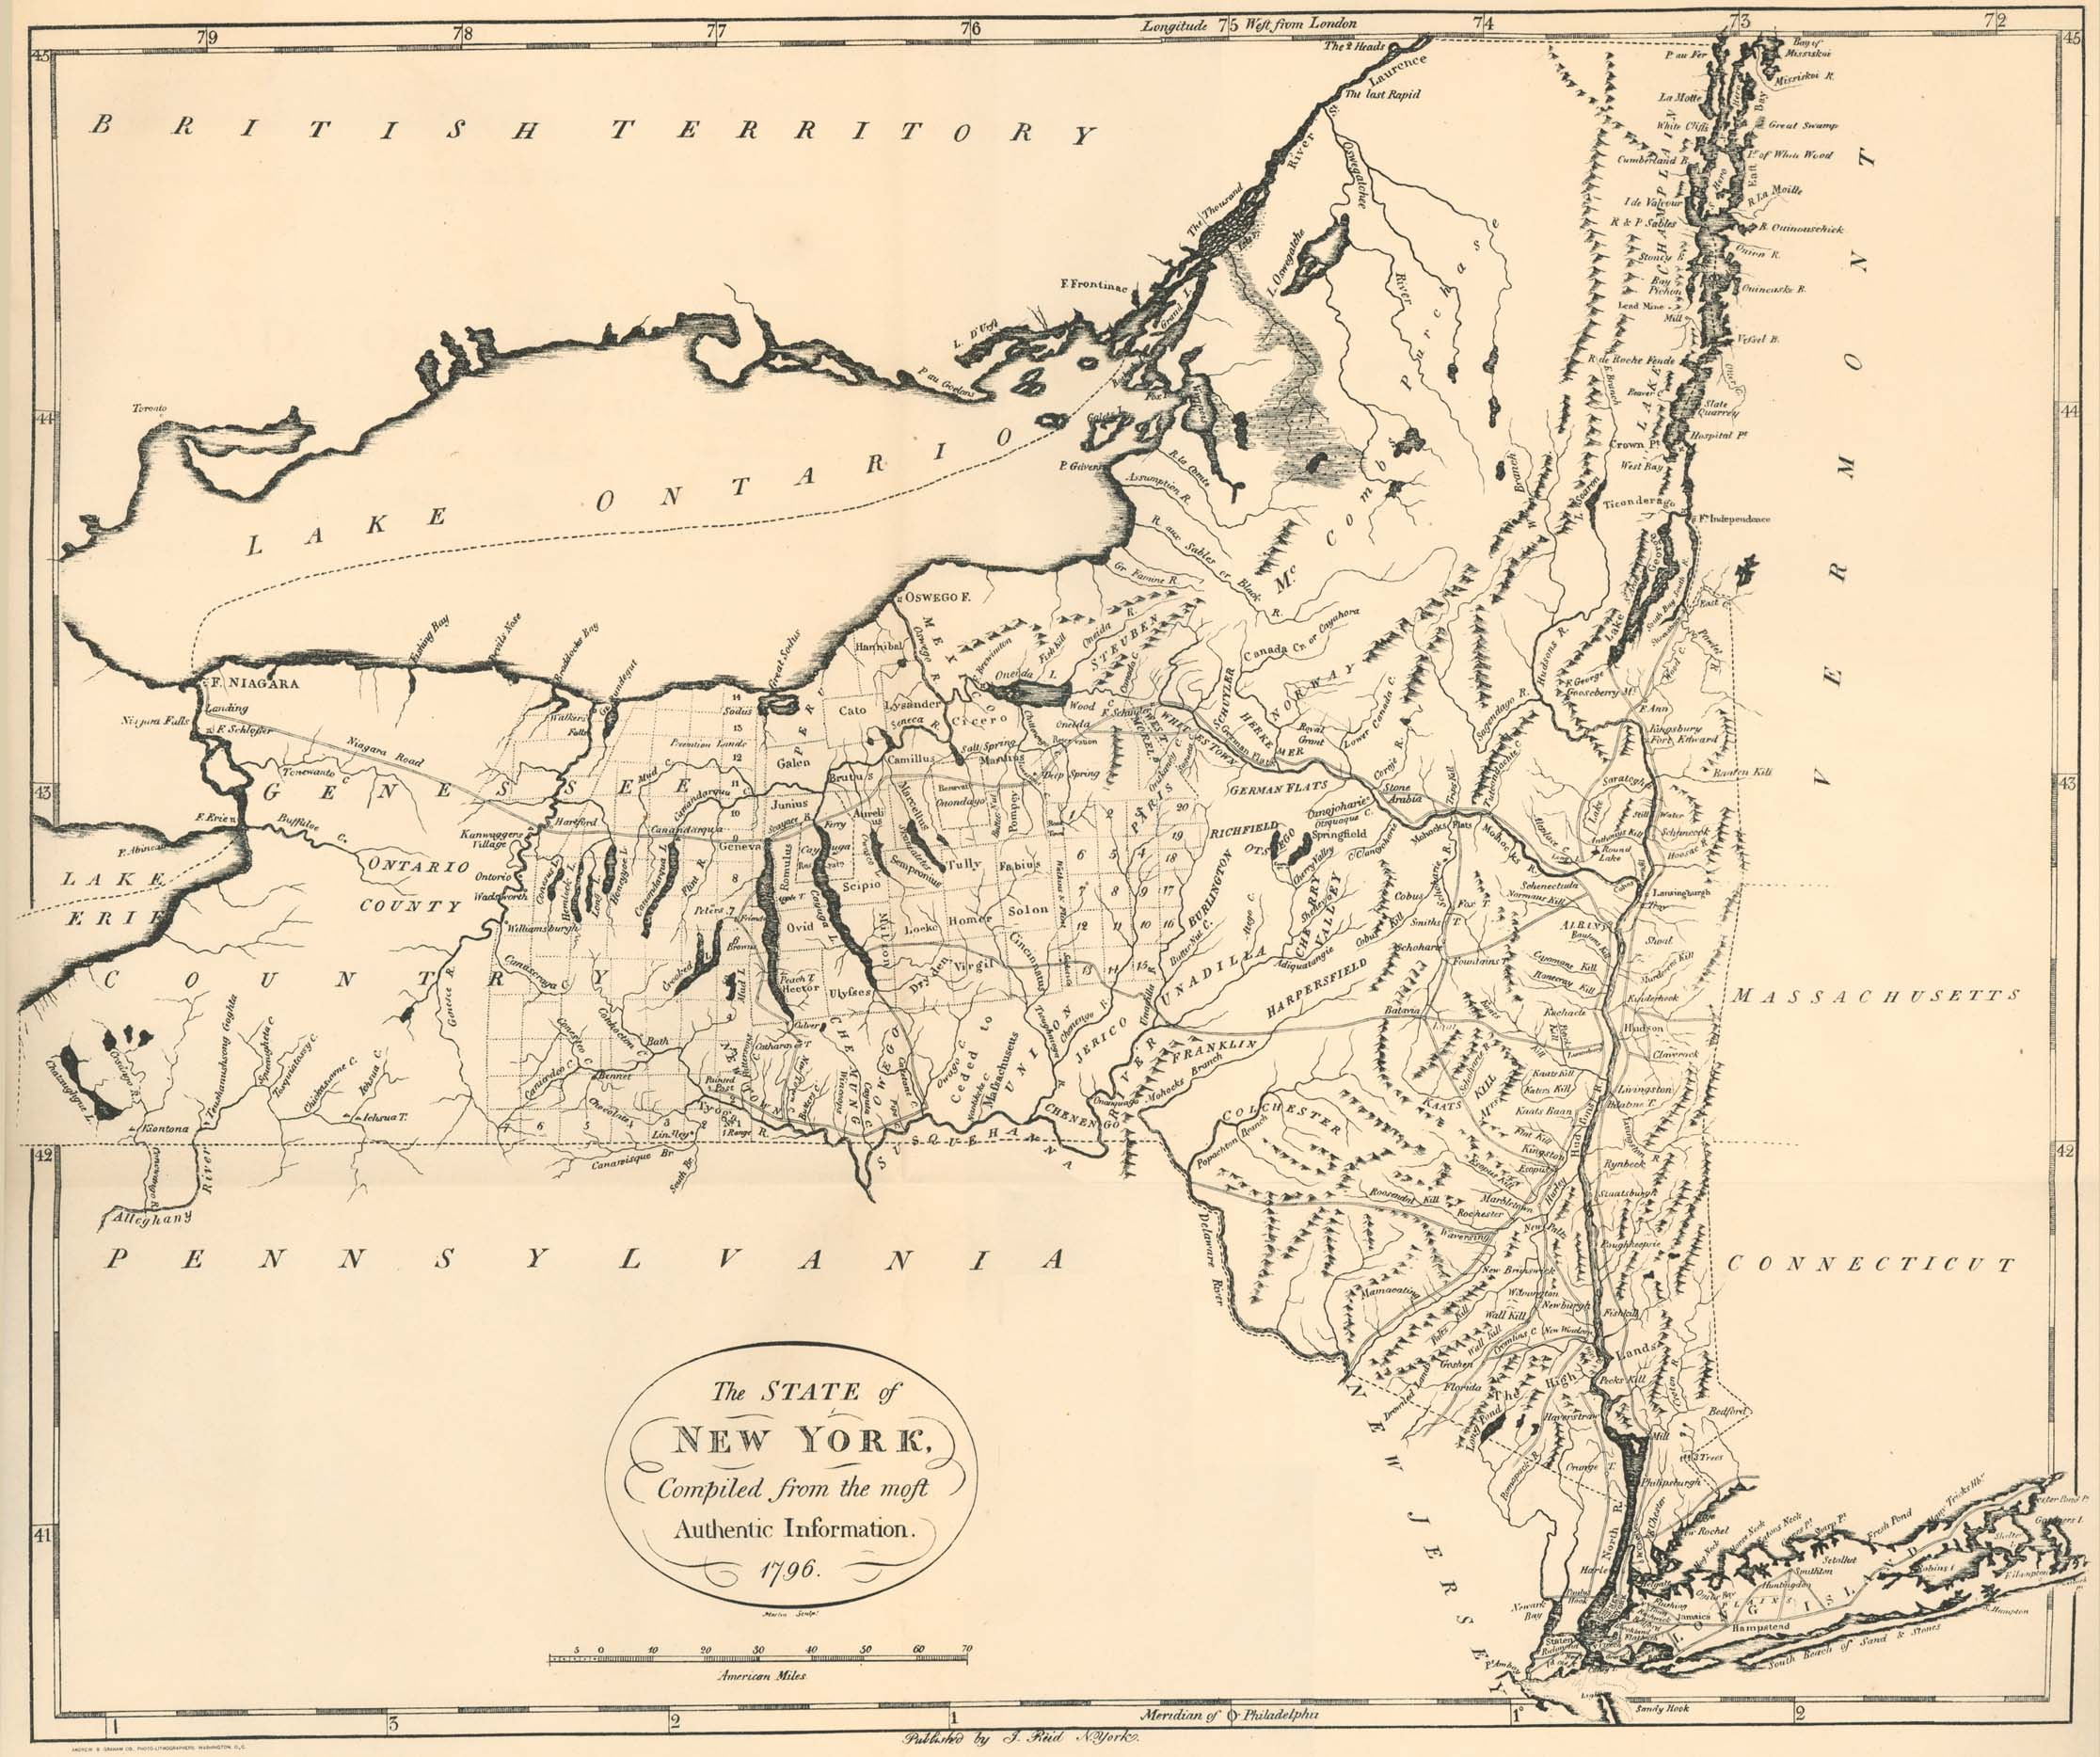 New York Maps PerryCastañeda Map Collection UT Library Online - Us map 1796